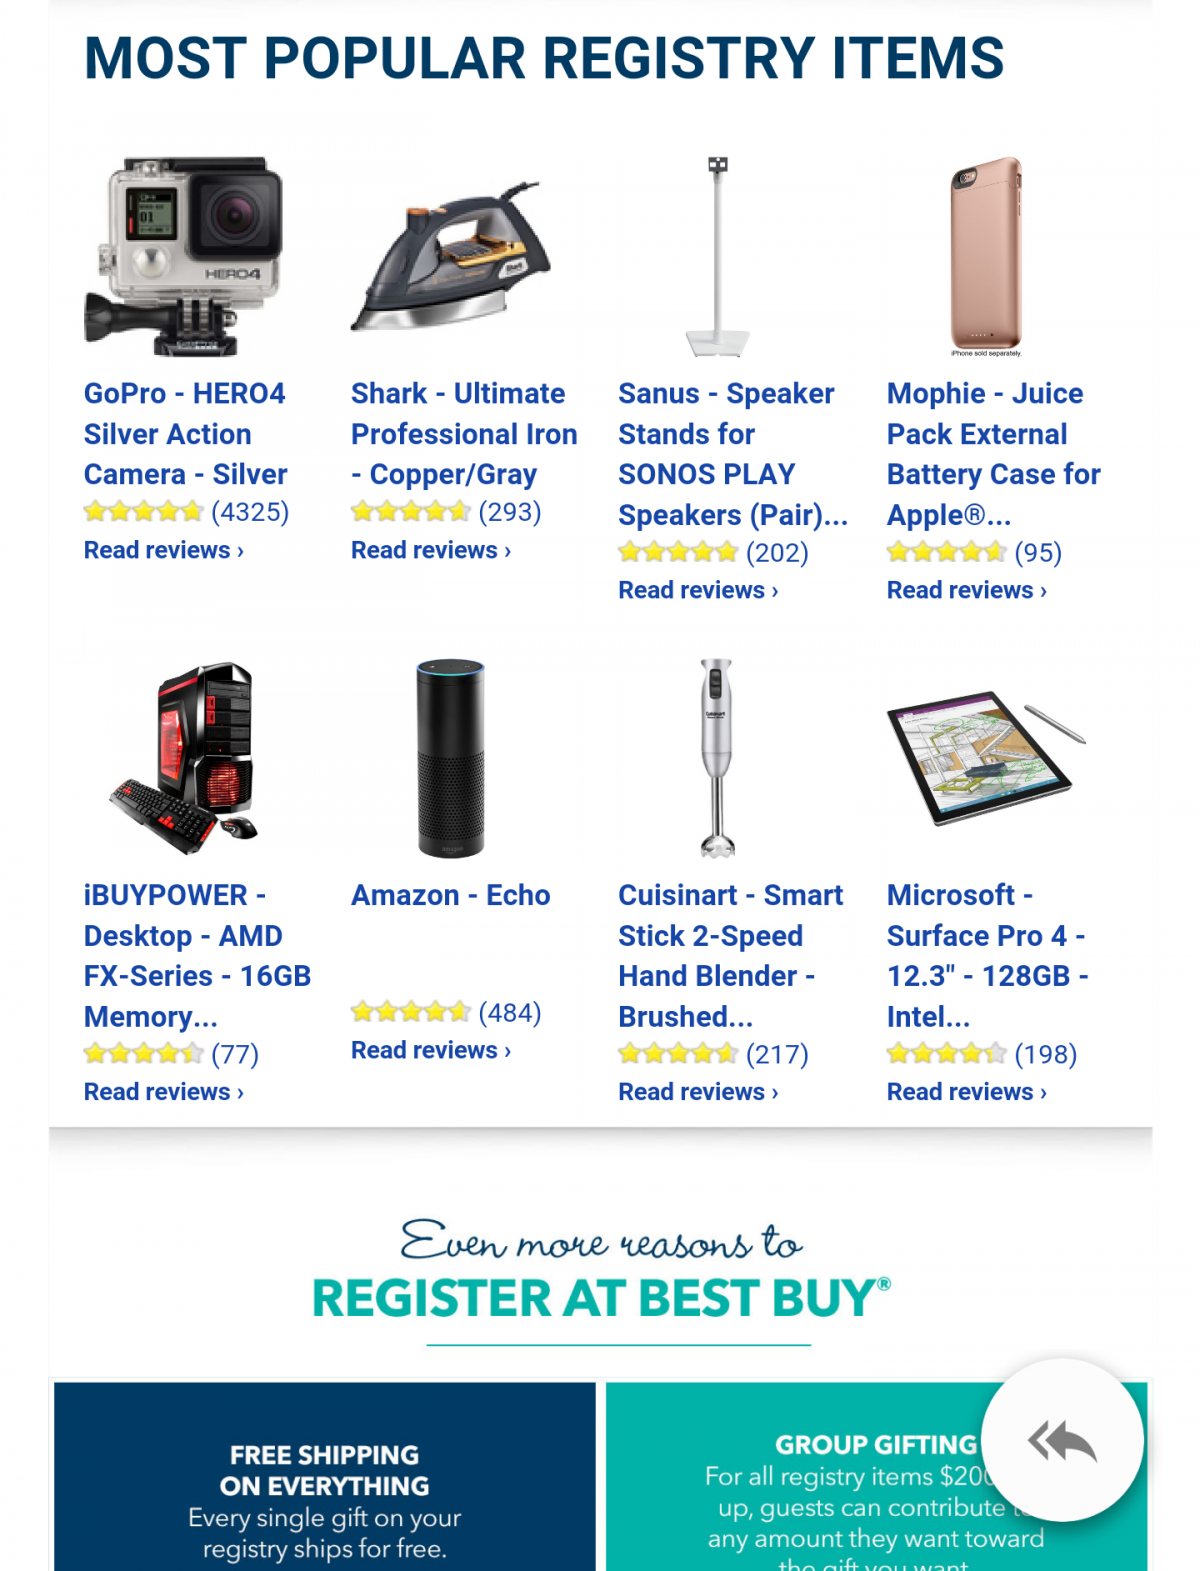 Best Buy Caters to the Geek Crowd with a Wedding Registry!